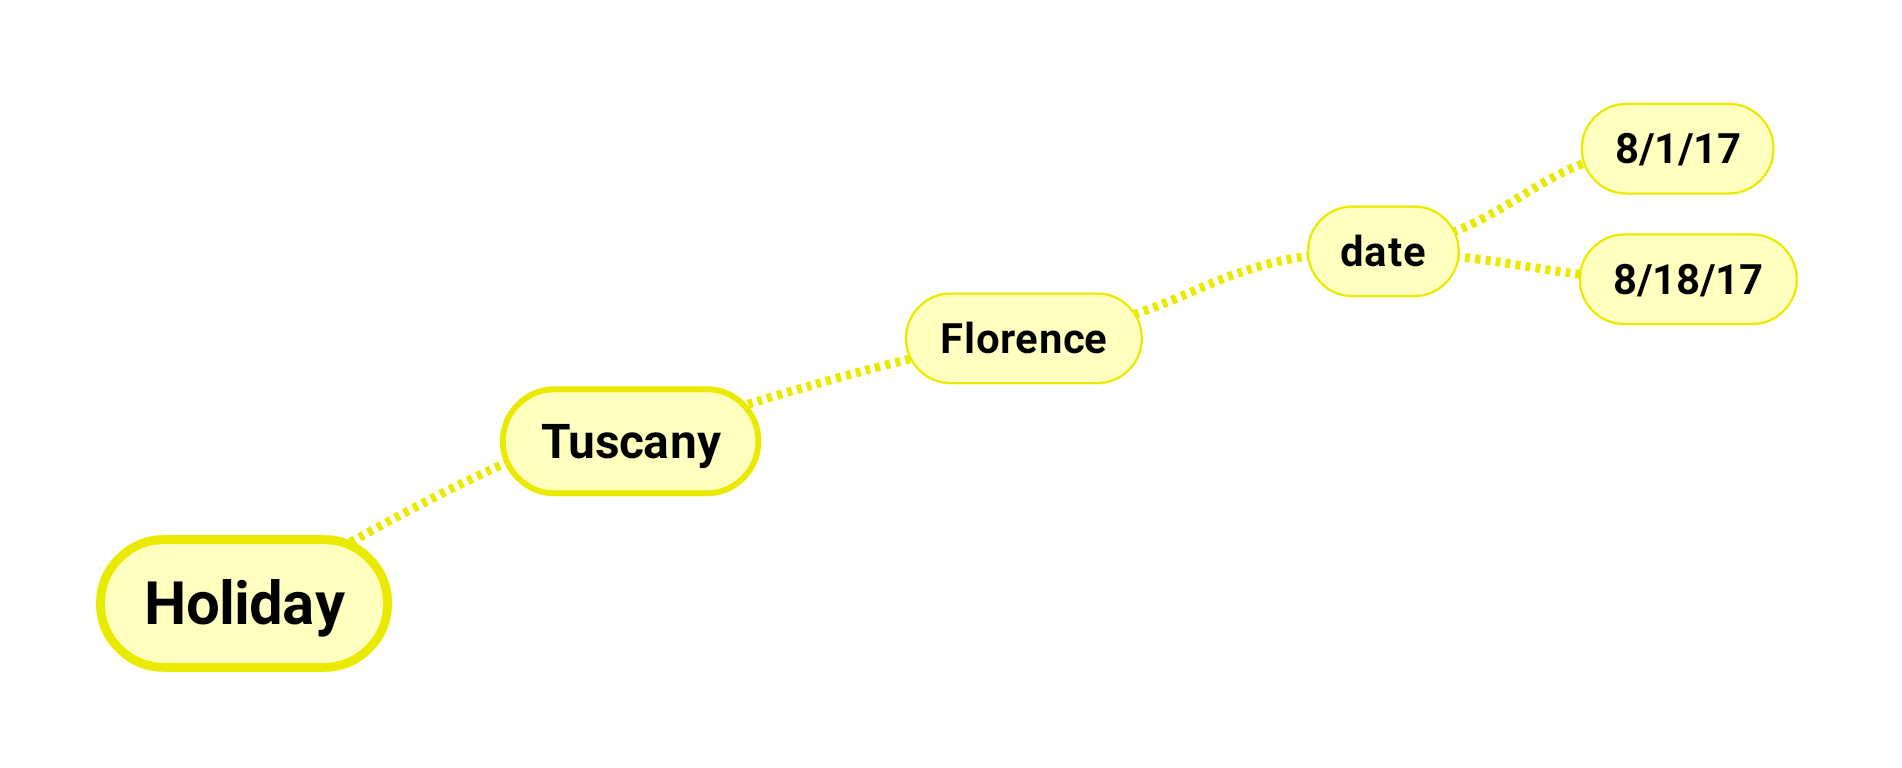 Yellow associations are connected to Tuscany